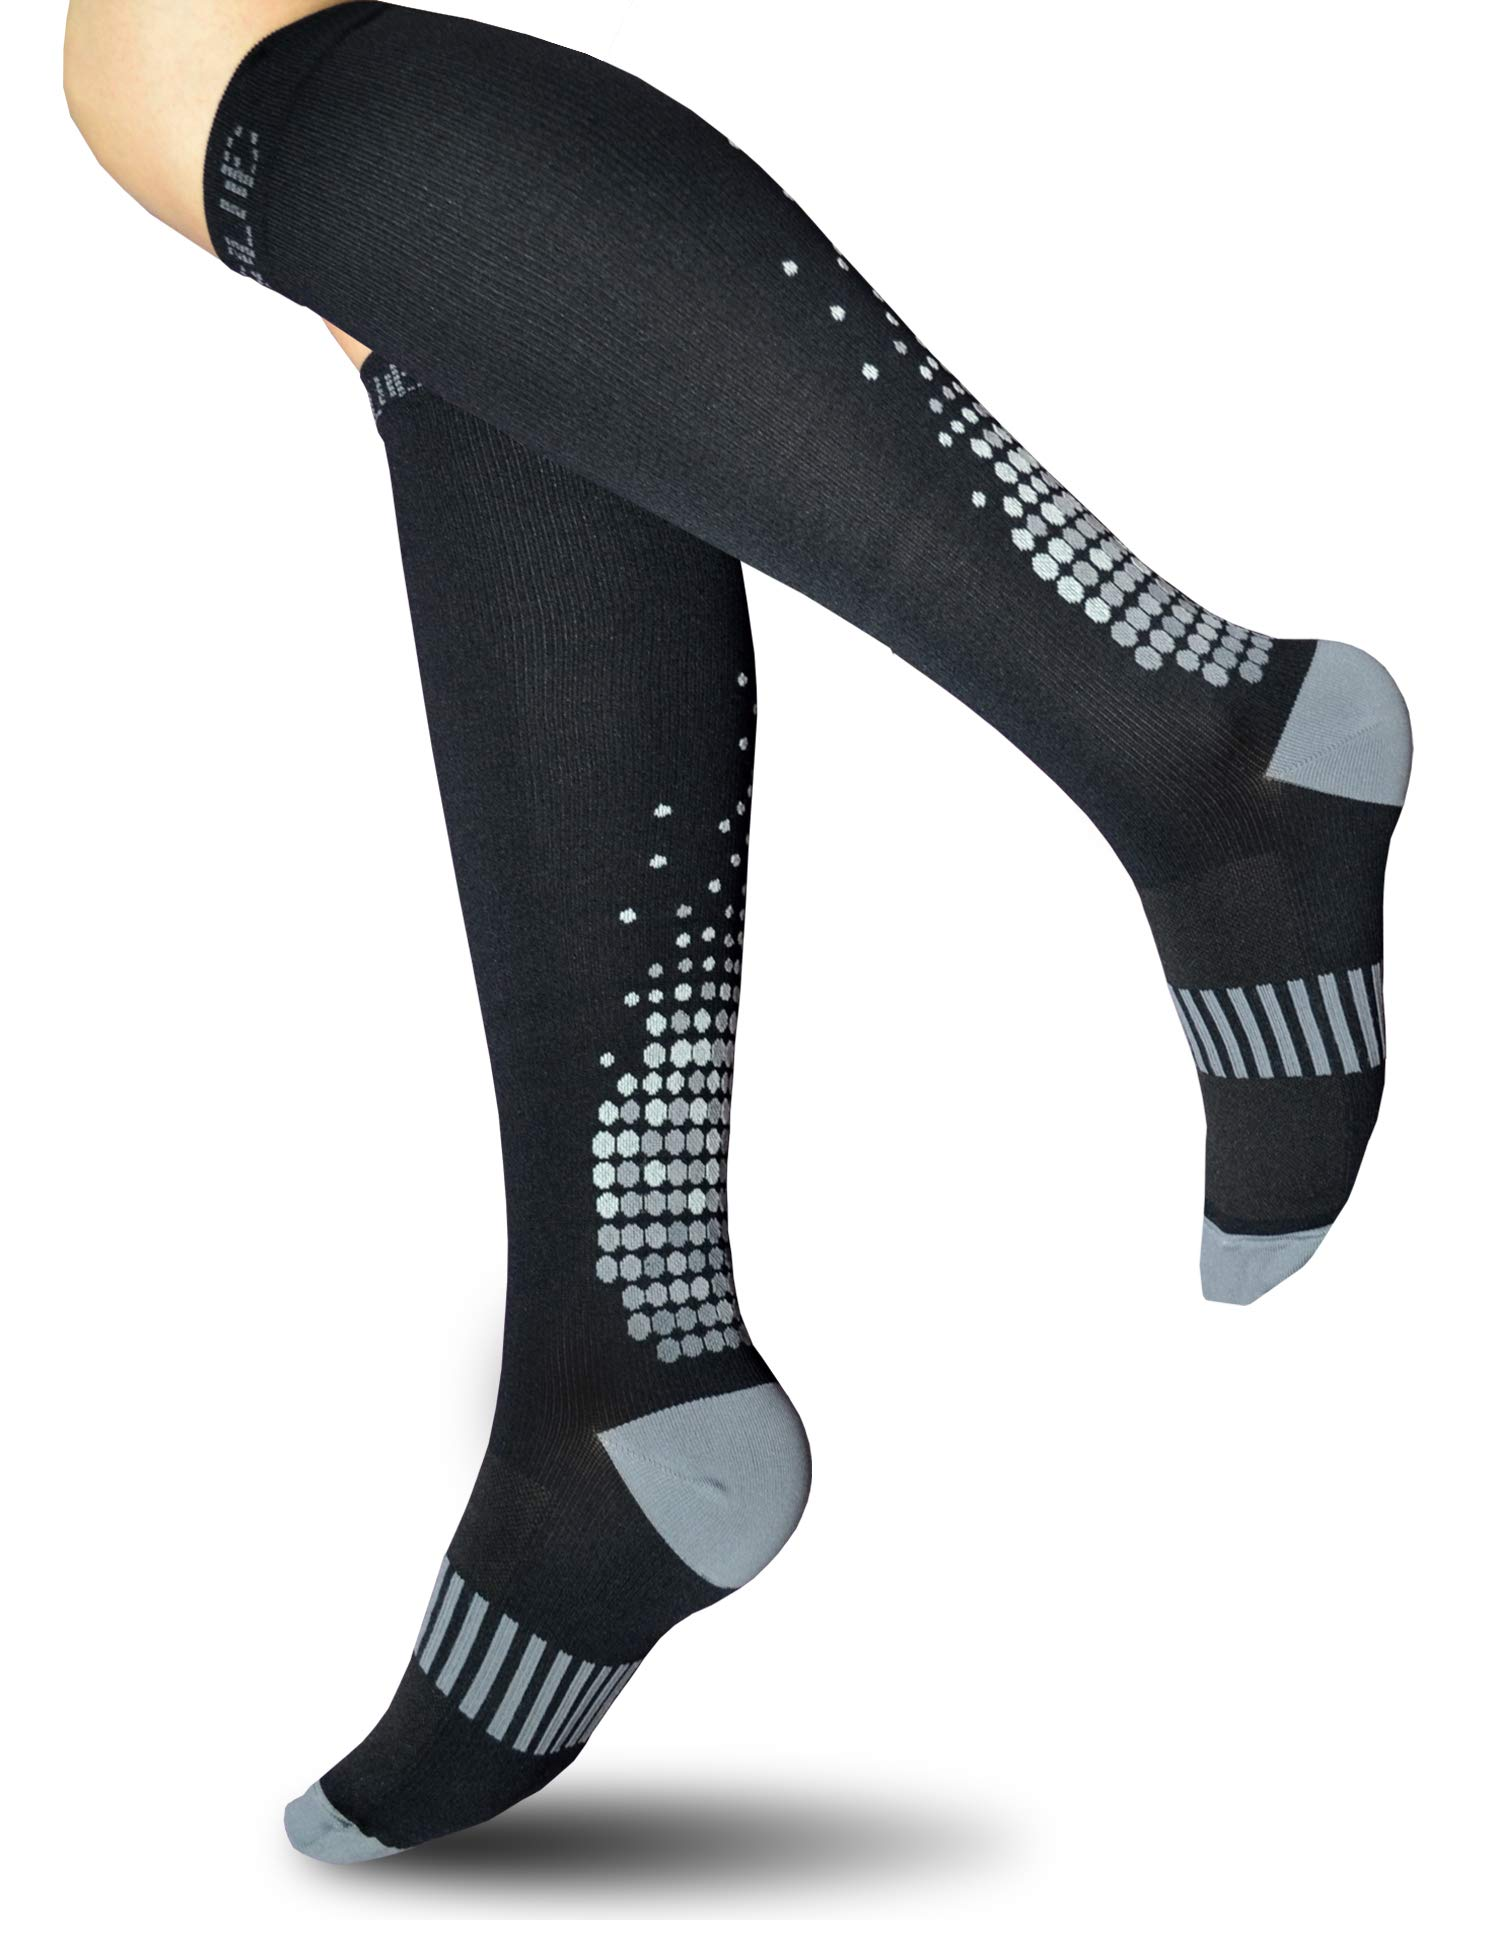 0bf1447e9bcc8 Details about SUGUE Compression Socks (1 Pair) for Women Men 20-30 mmHg -  Best Graduated